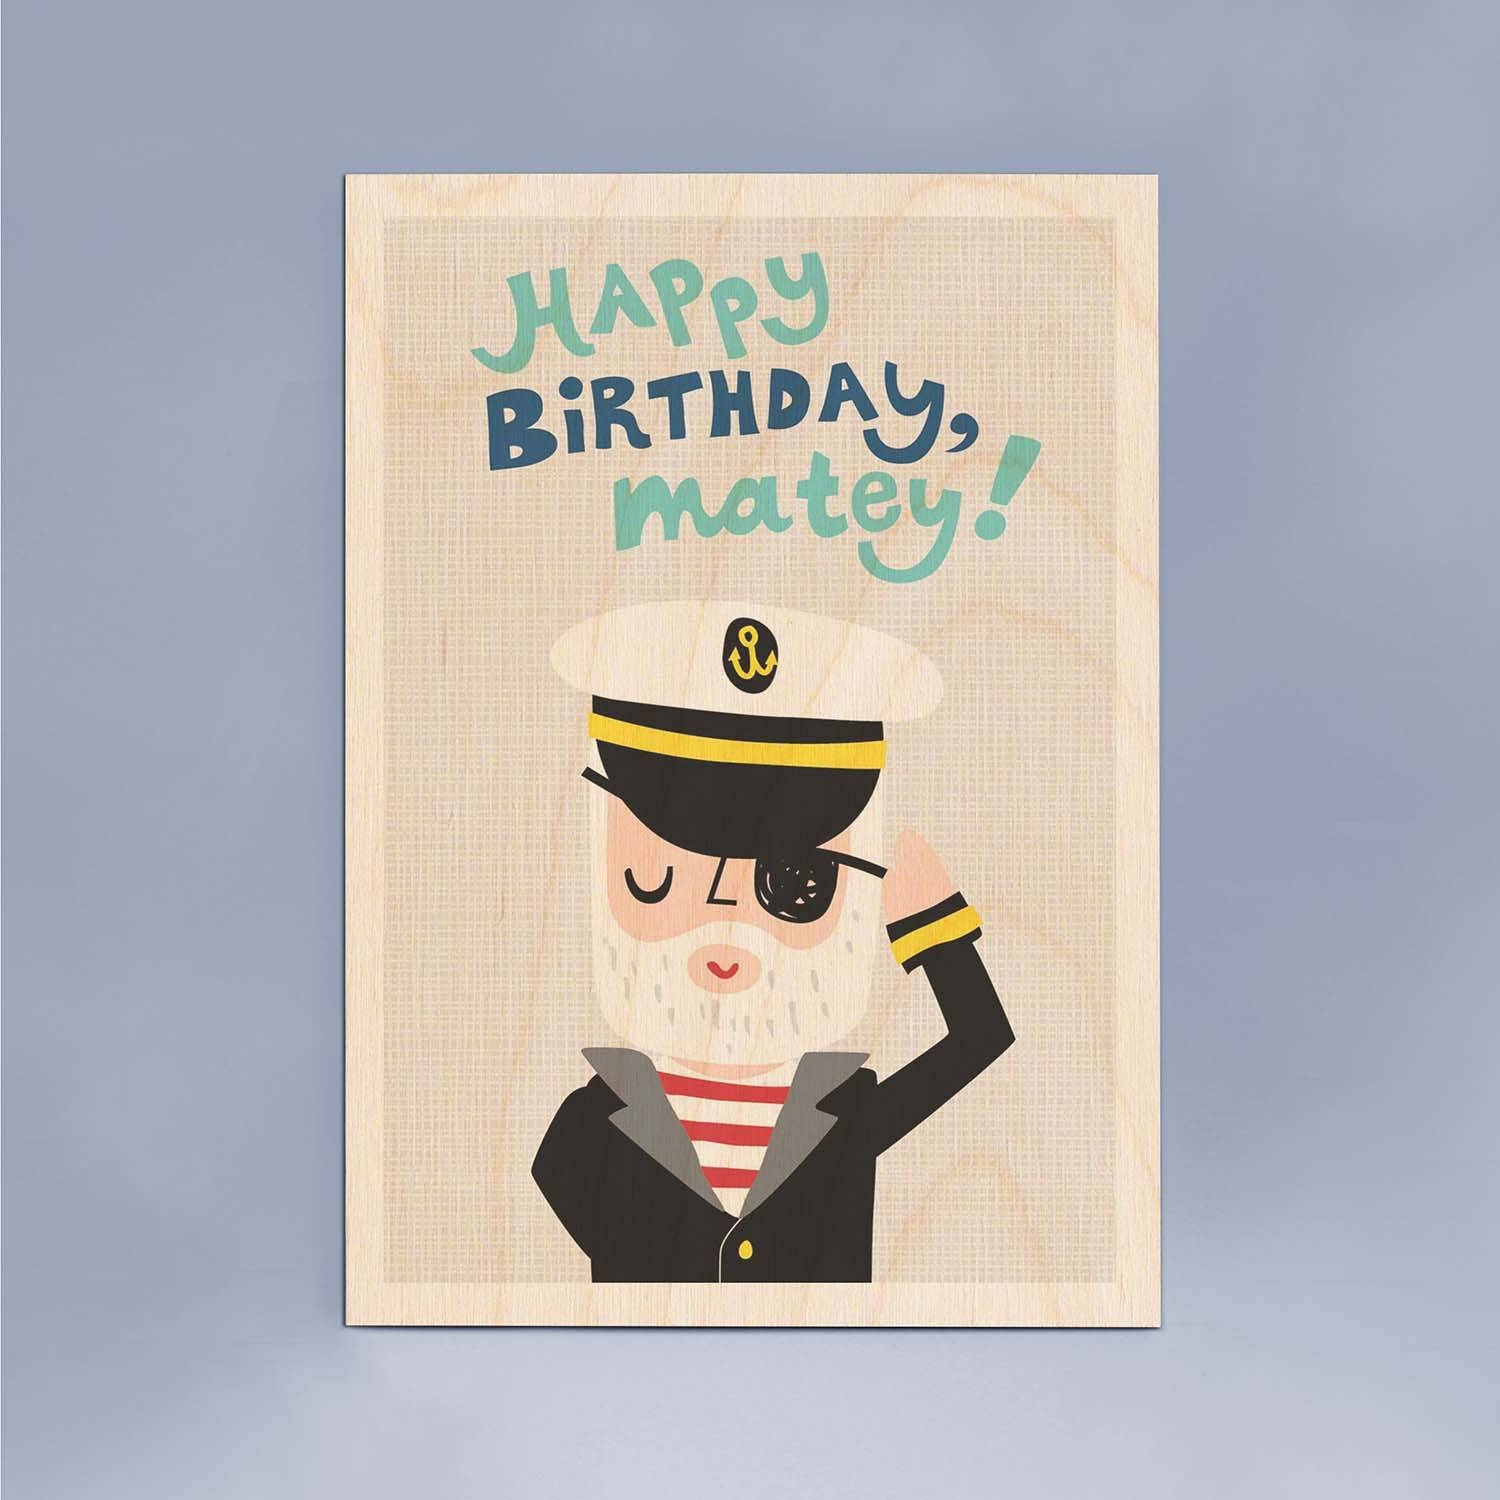 Happy Birthday Matey Wooden Timbergram Wall Art – Wooden Postcards With Regard To Latest Happy Birthday Wall Art (View 7 of 20)